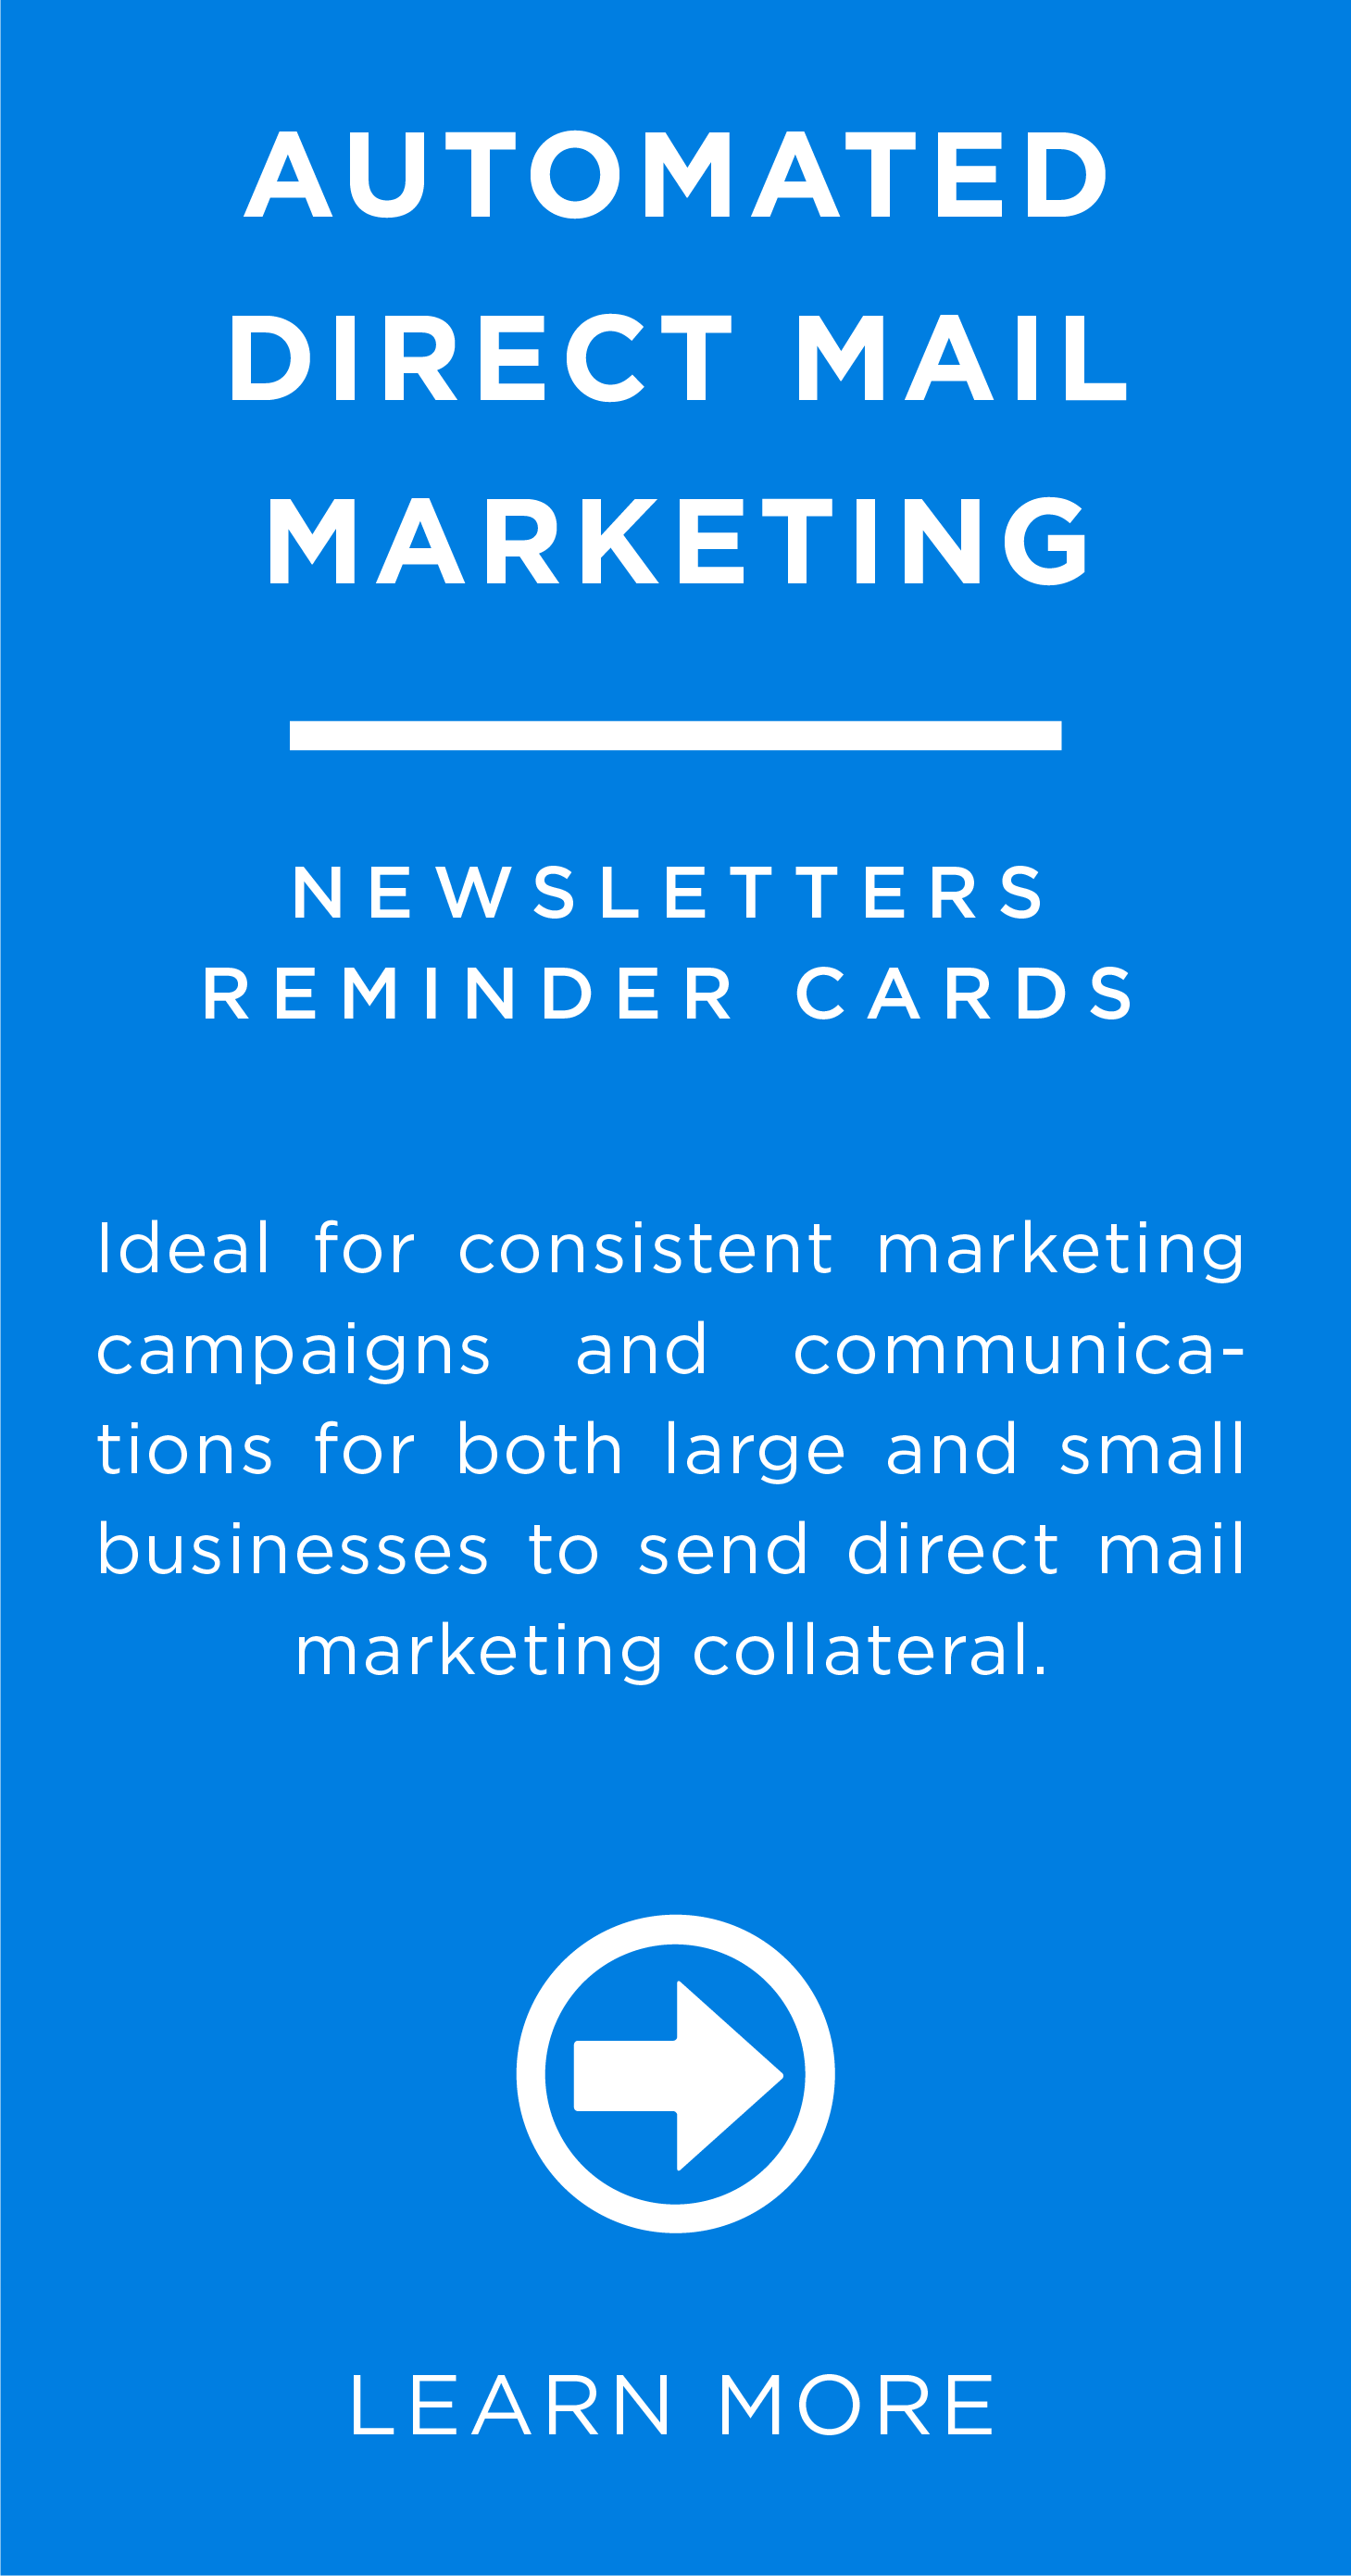 Ideal for consistent marketing campaigns and communications for both large and small businesses to send direct mail marketing collateral.